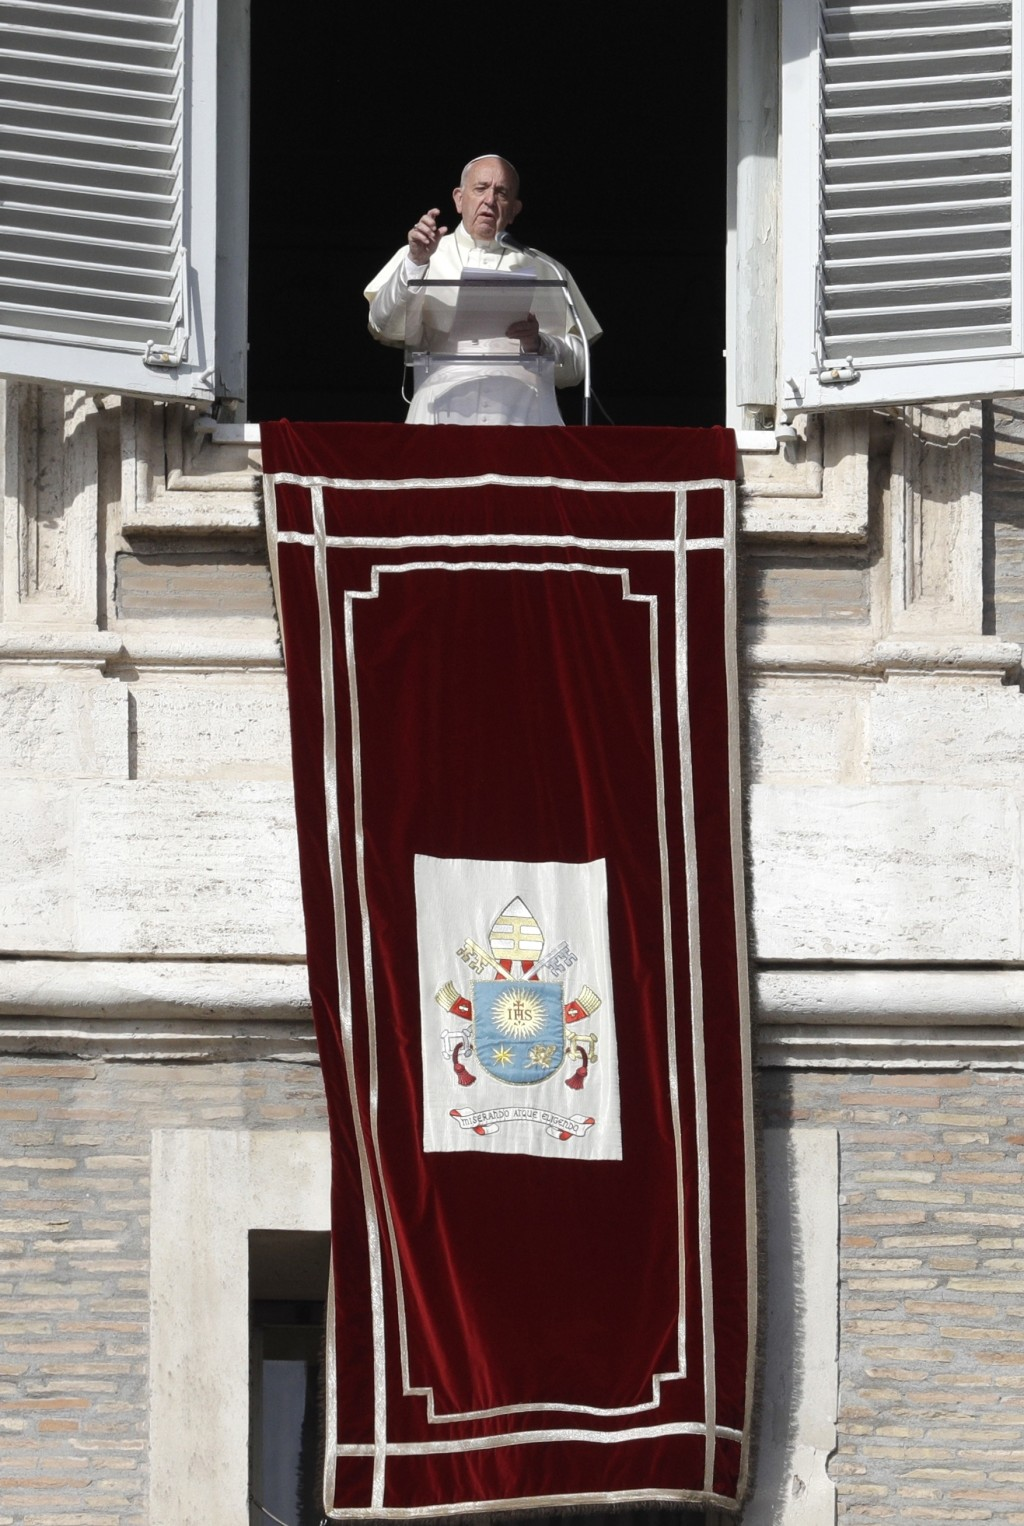 Pope Francis delivers his message during his Angelus prayer from his studio window overlooking St. Peter's Square, at the Vatican, Sunday, Nov. 10, 20...